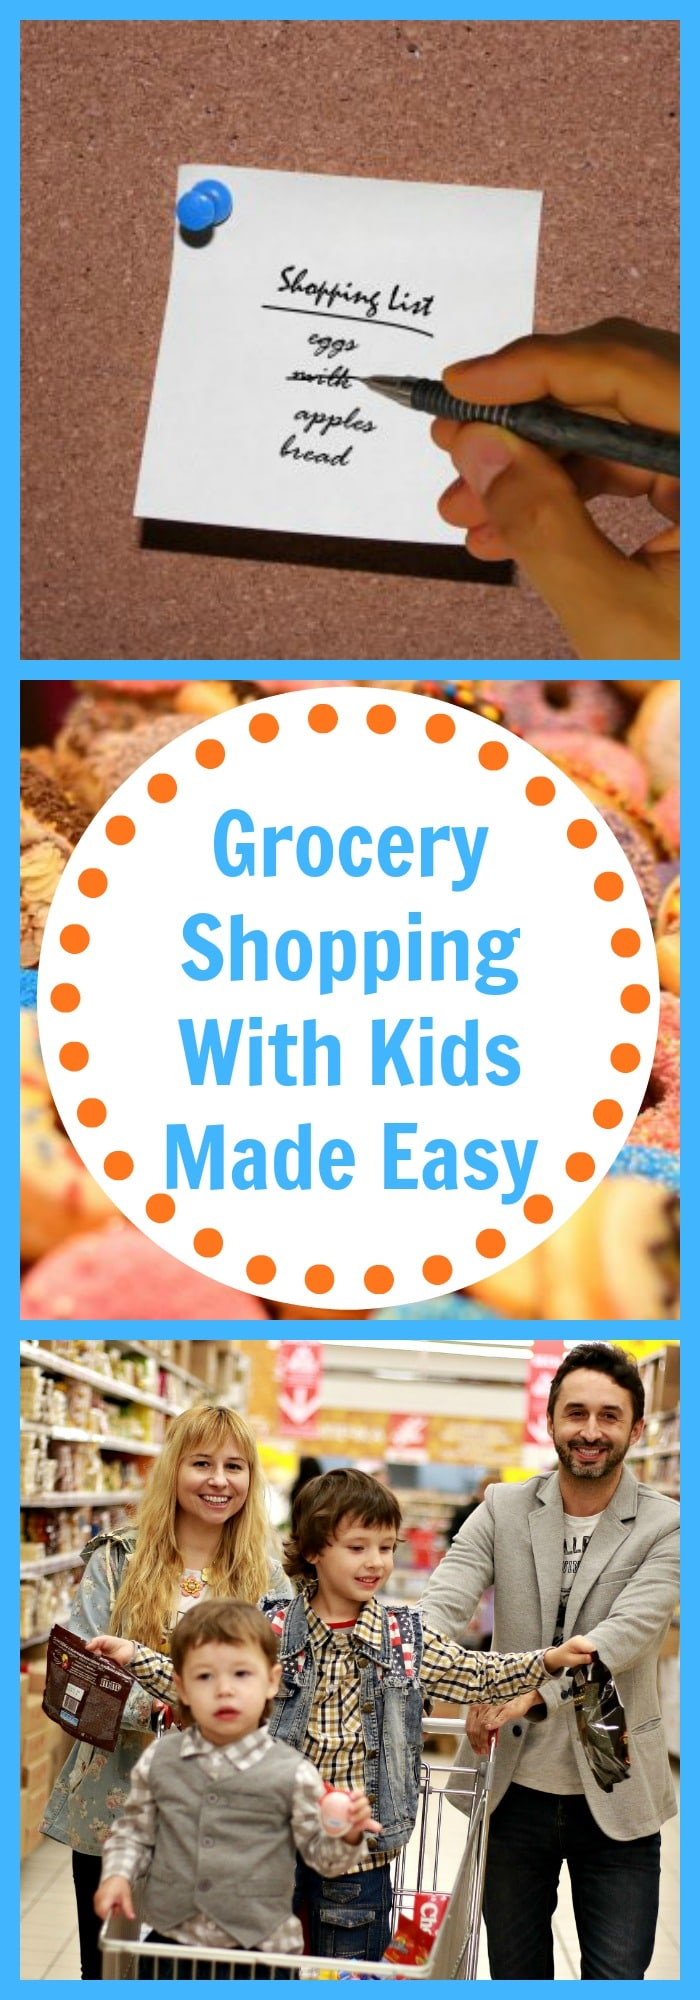 Parenting--Grocery Shopping With Kids Made Easy--The Organized Mom